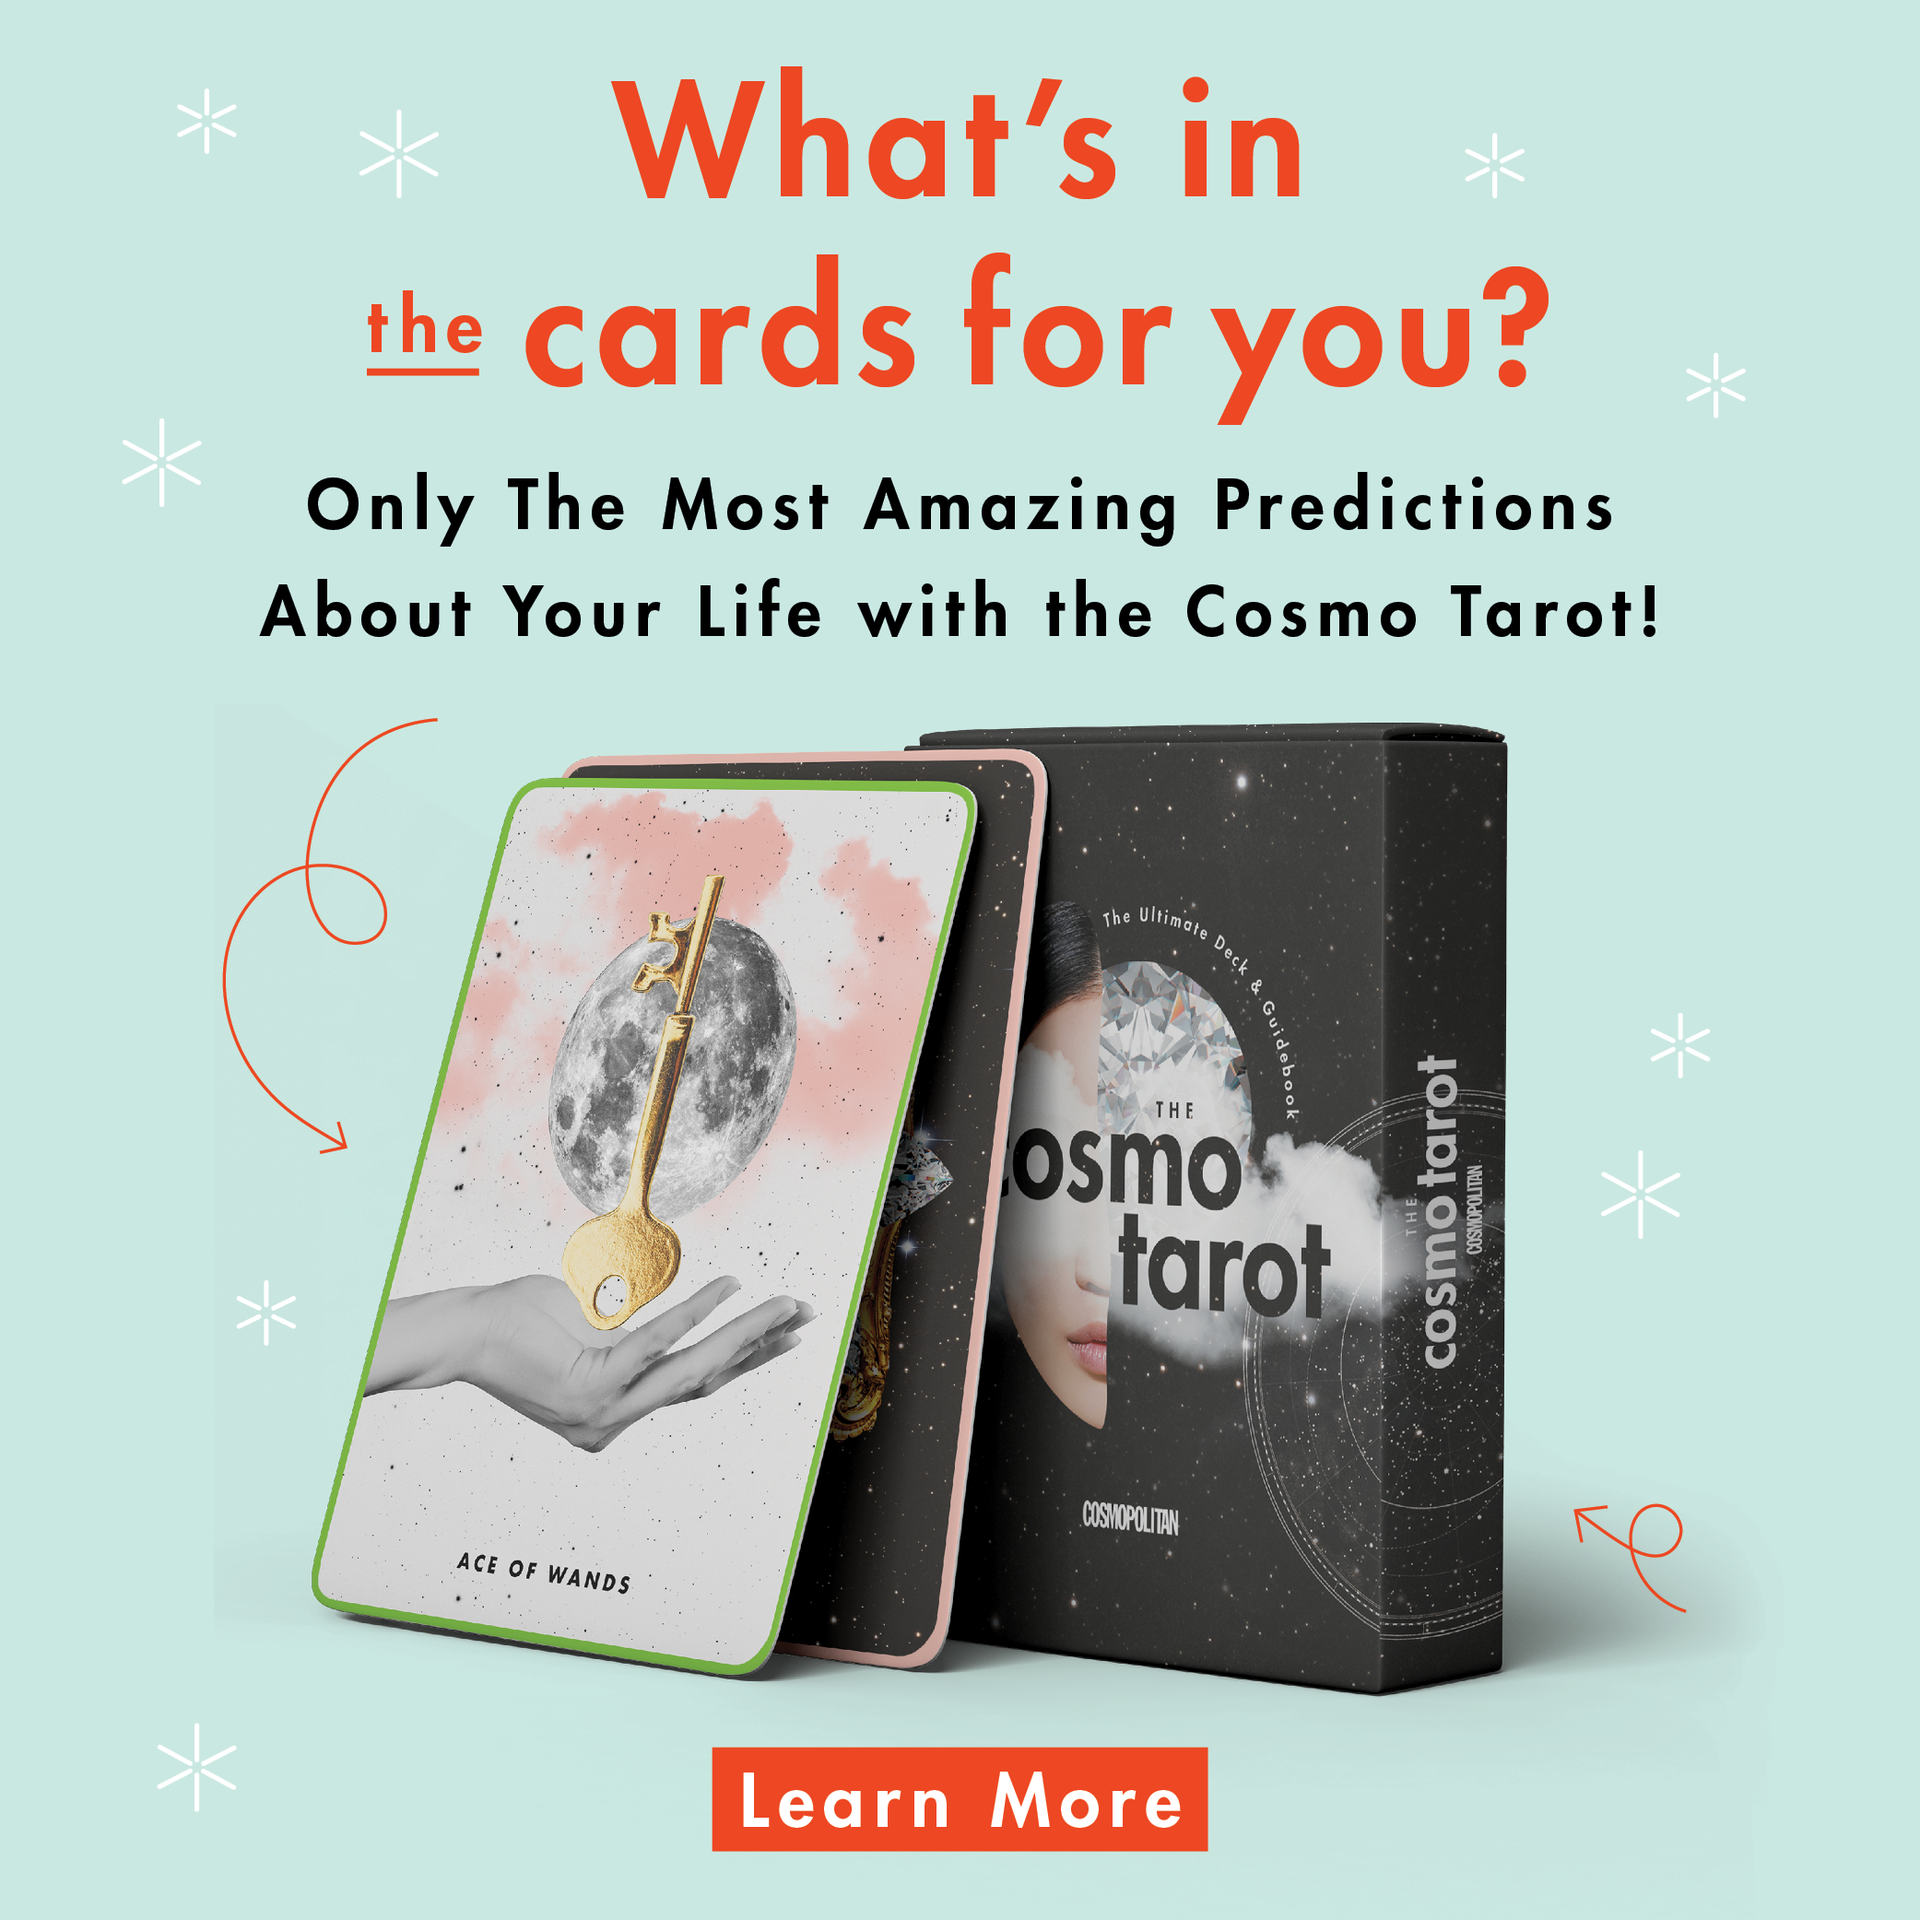 What's in the cards for you? Only the most amazing predictions about your life with the Cosmo Tarot!